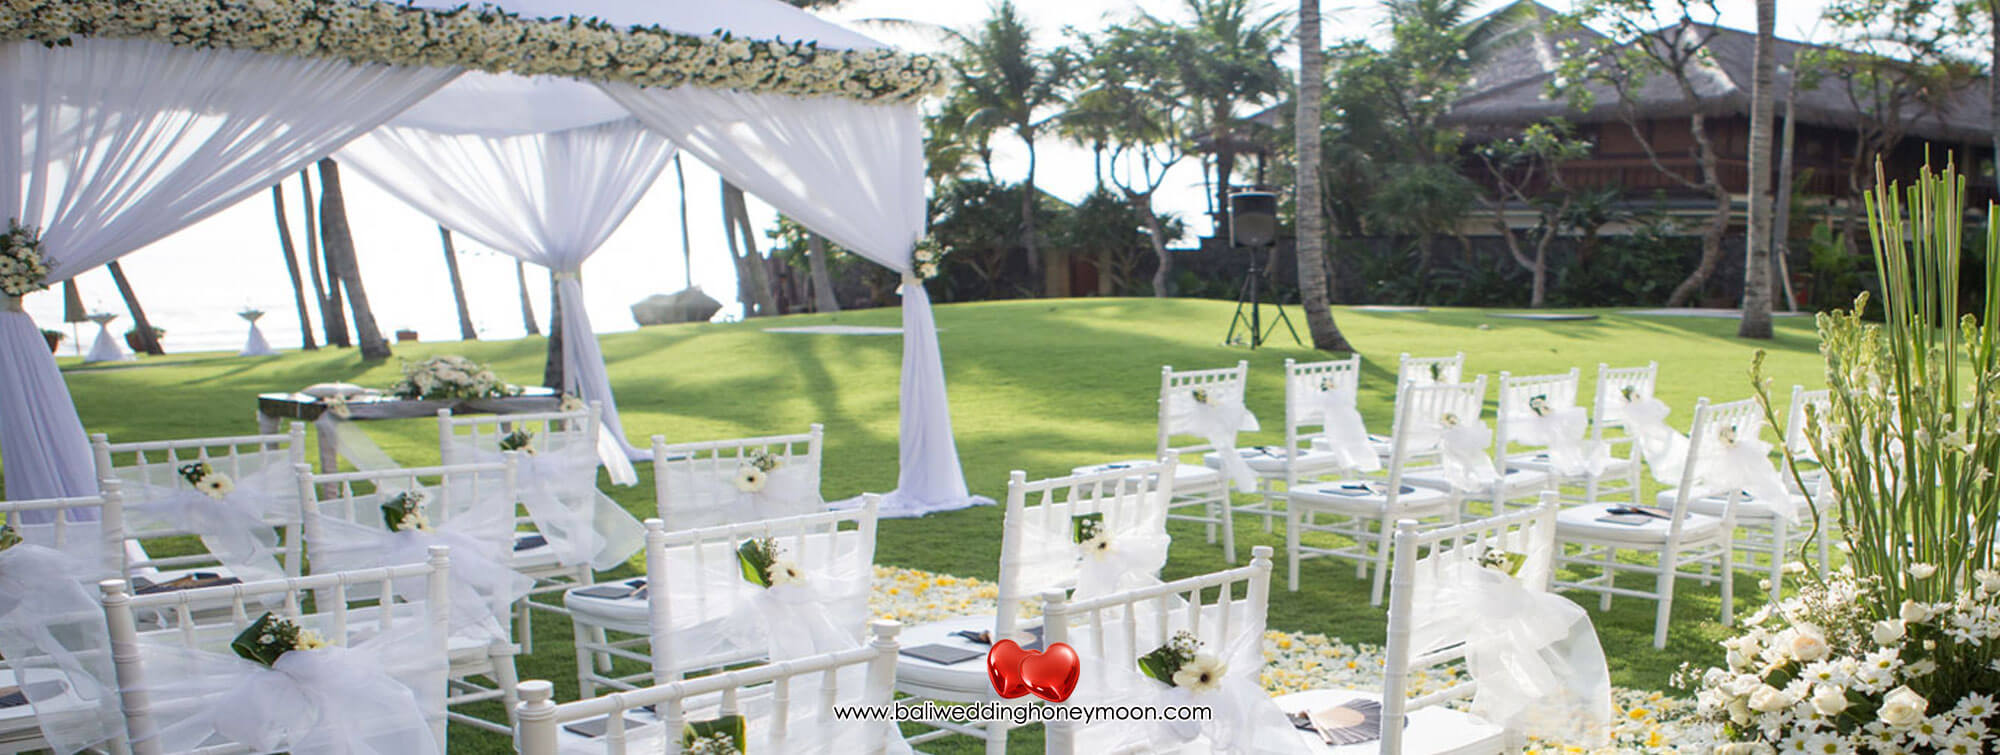 baliweddingdecoration-baliweddinghoneymoon-baliweddingorganizer-baliweddingplanner5